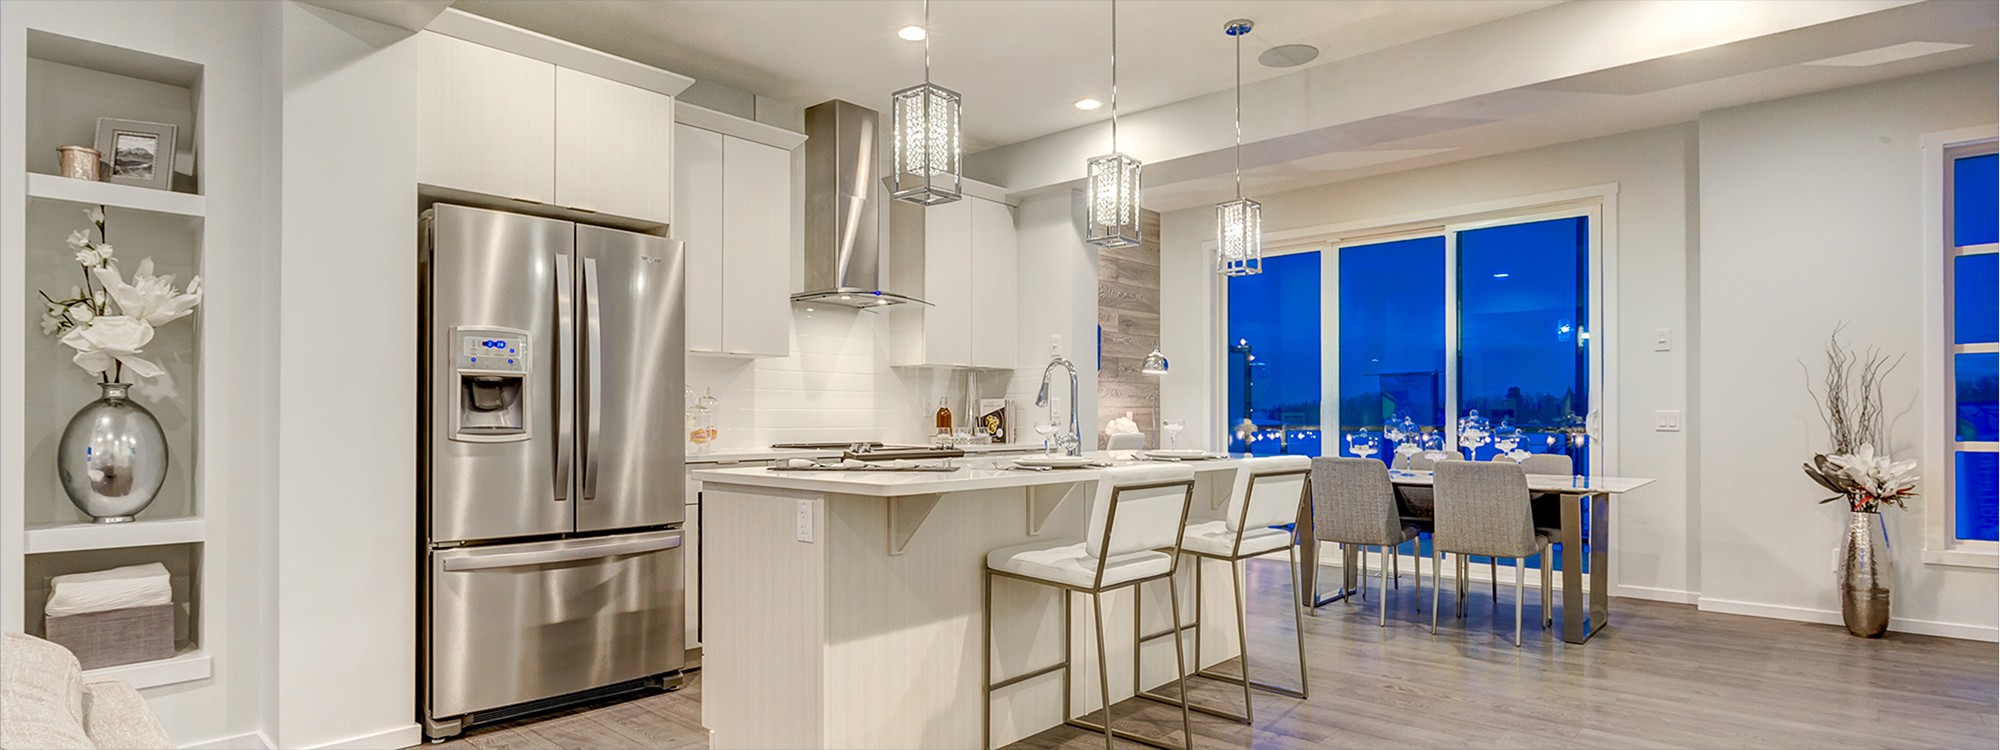 Edmonton New Home Builder City Homes Townhome Kitchen